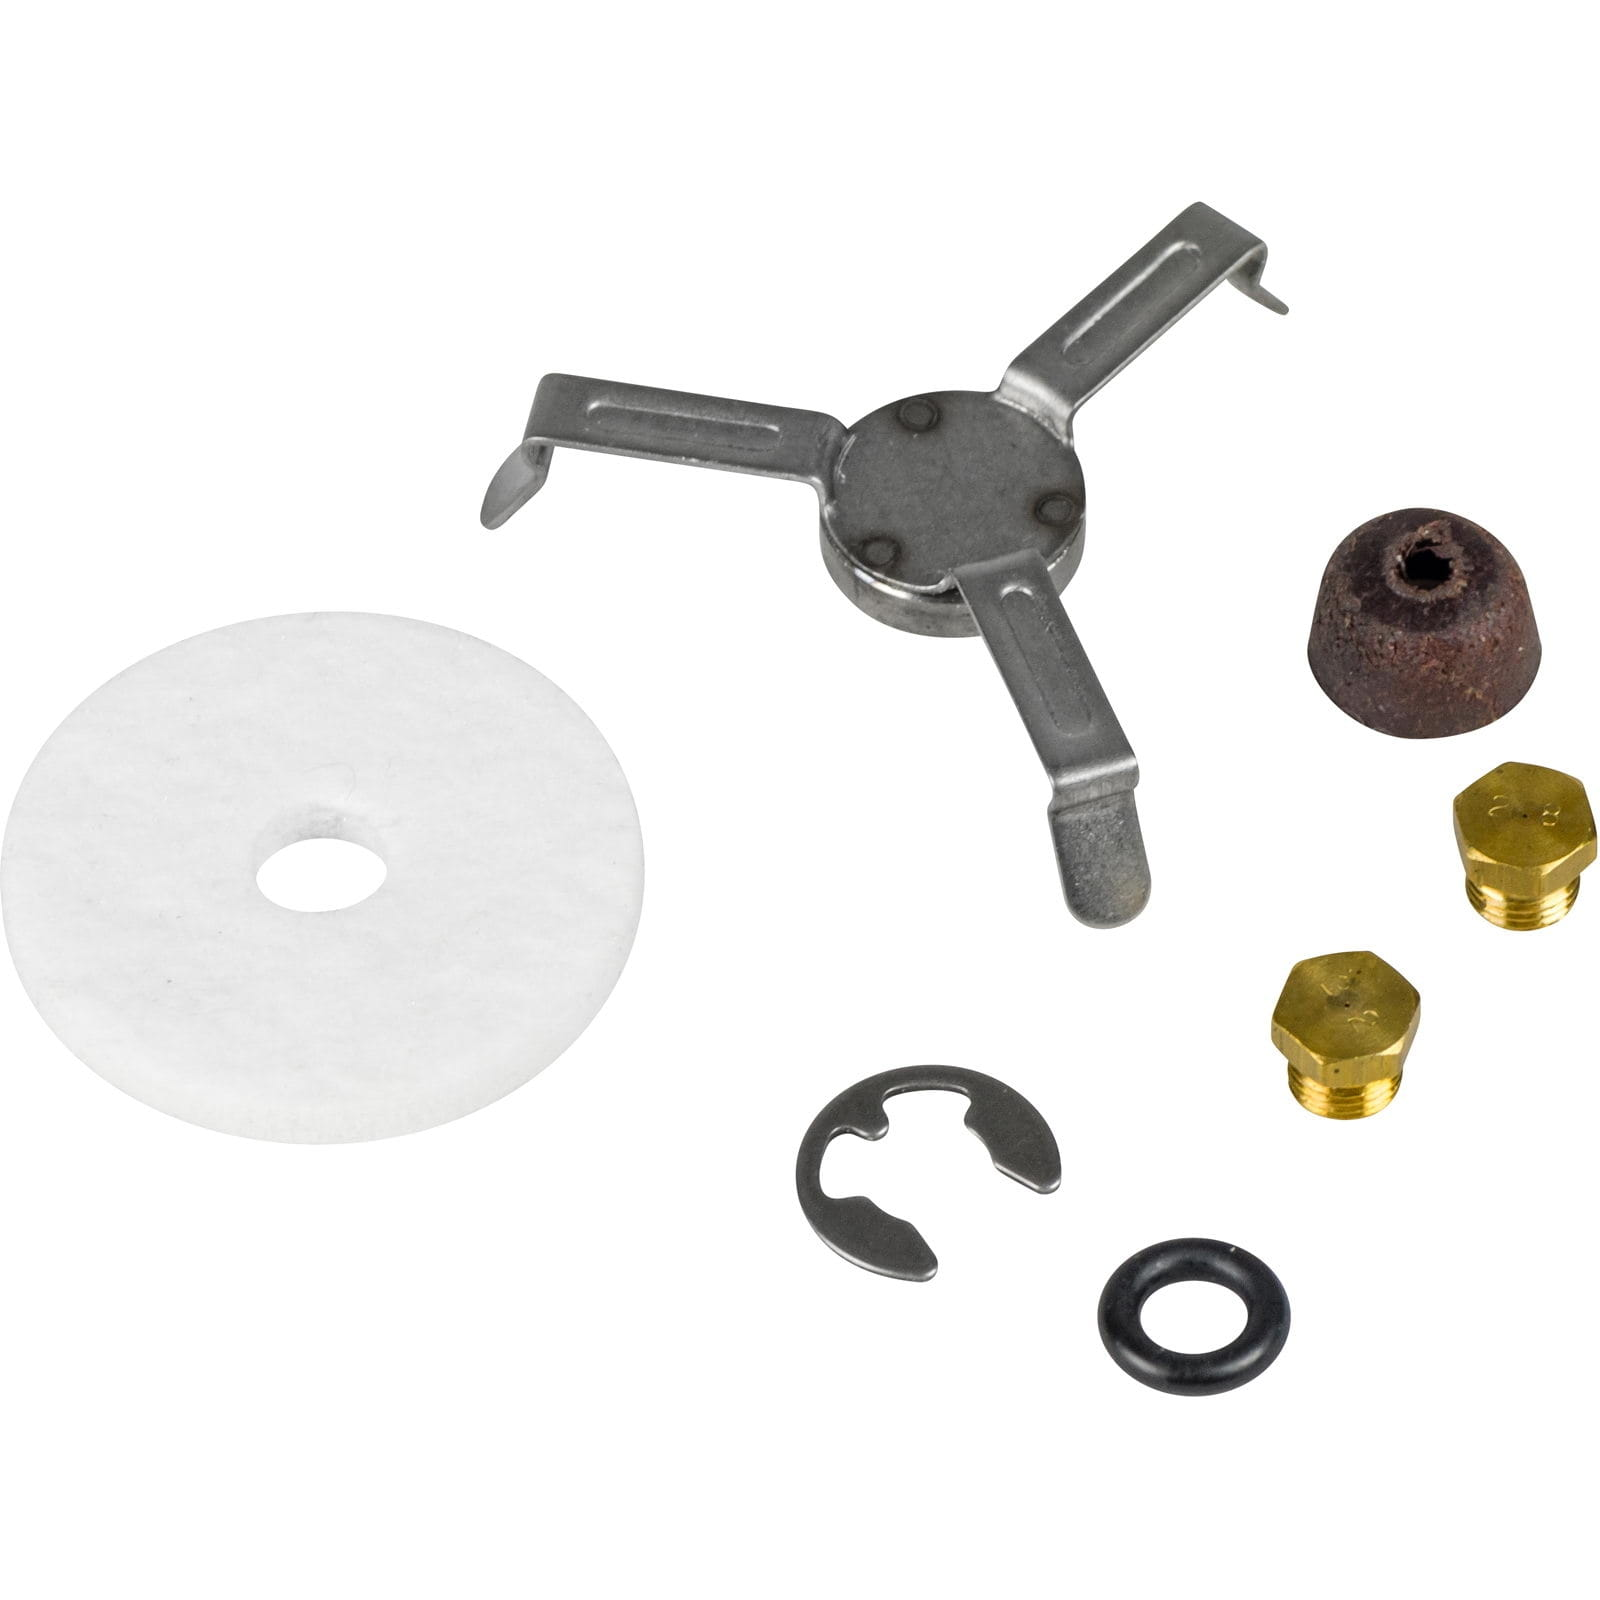 Trangia Wartungs-Kit MultiFuel X2 - Bild 1